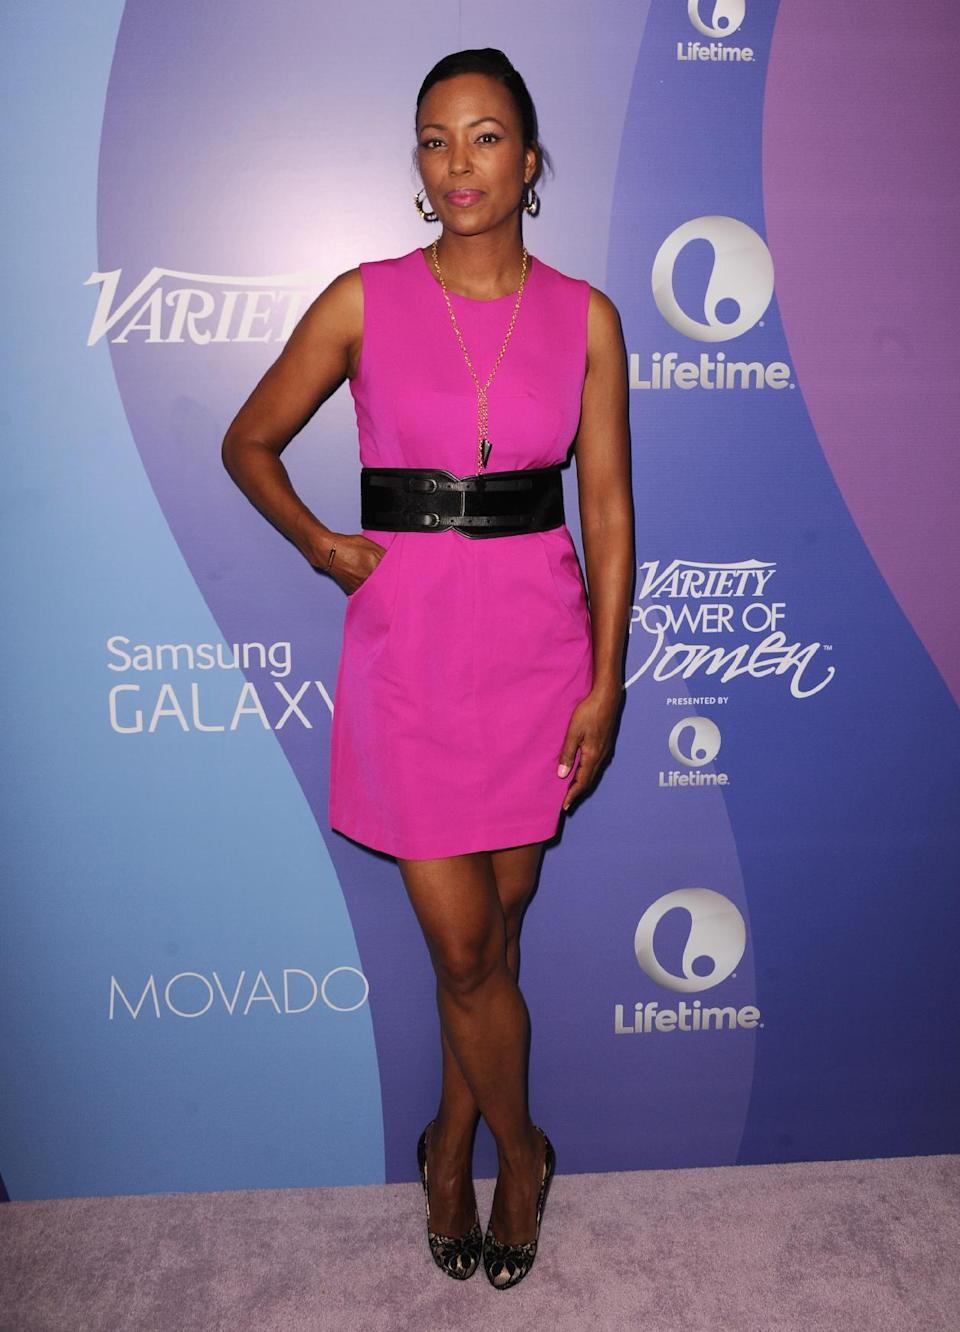 Actress Aisha Tyler arrives at Variety's 5th Annual Power of Women event at the Beverly Wilshire Hotel on Friday, Oct. 4, 2013, in Beverly Hills, Calif. (Photo by Jordan Strauss/Invision/AP)